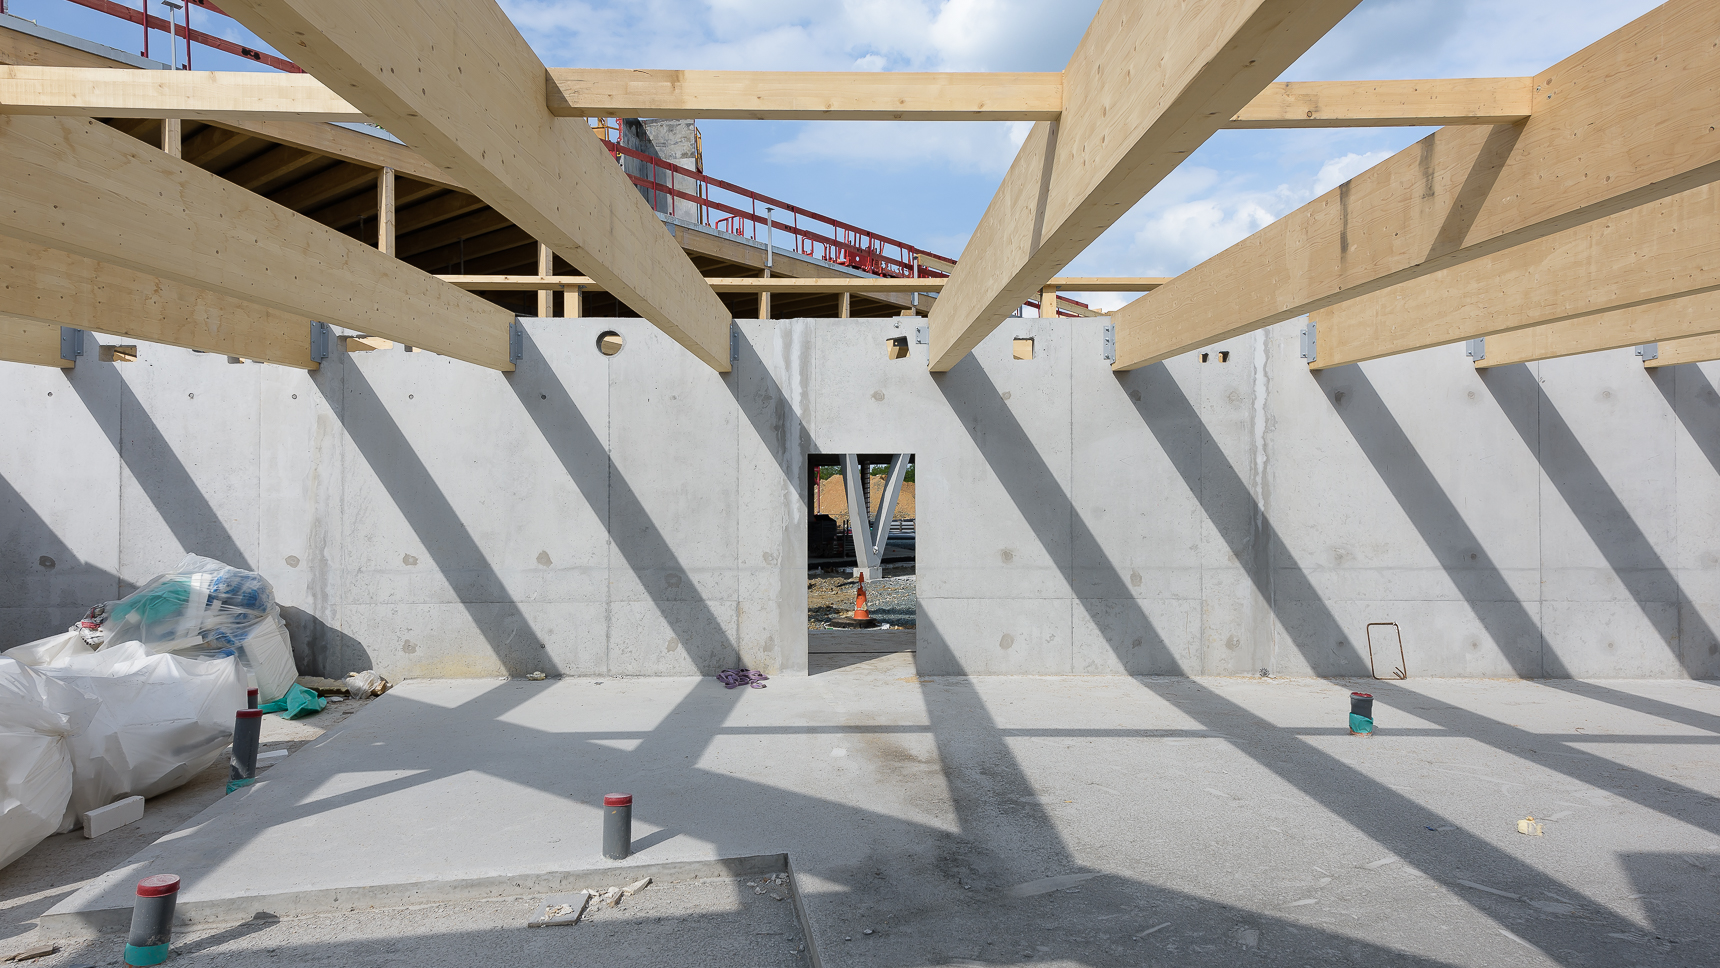 photographe d'architecture ©INTERVALphoto : Lycée Polyvalent, Région Pays de Loire, AIA architecte, Chantier, Nort sur Erdre (44) 7/22 ©INTERVAL photo